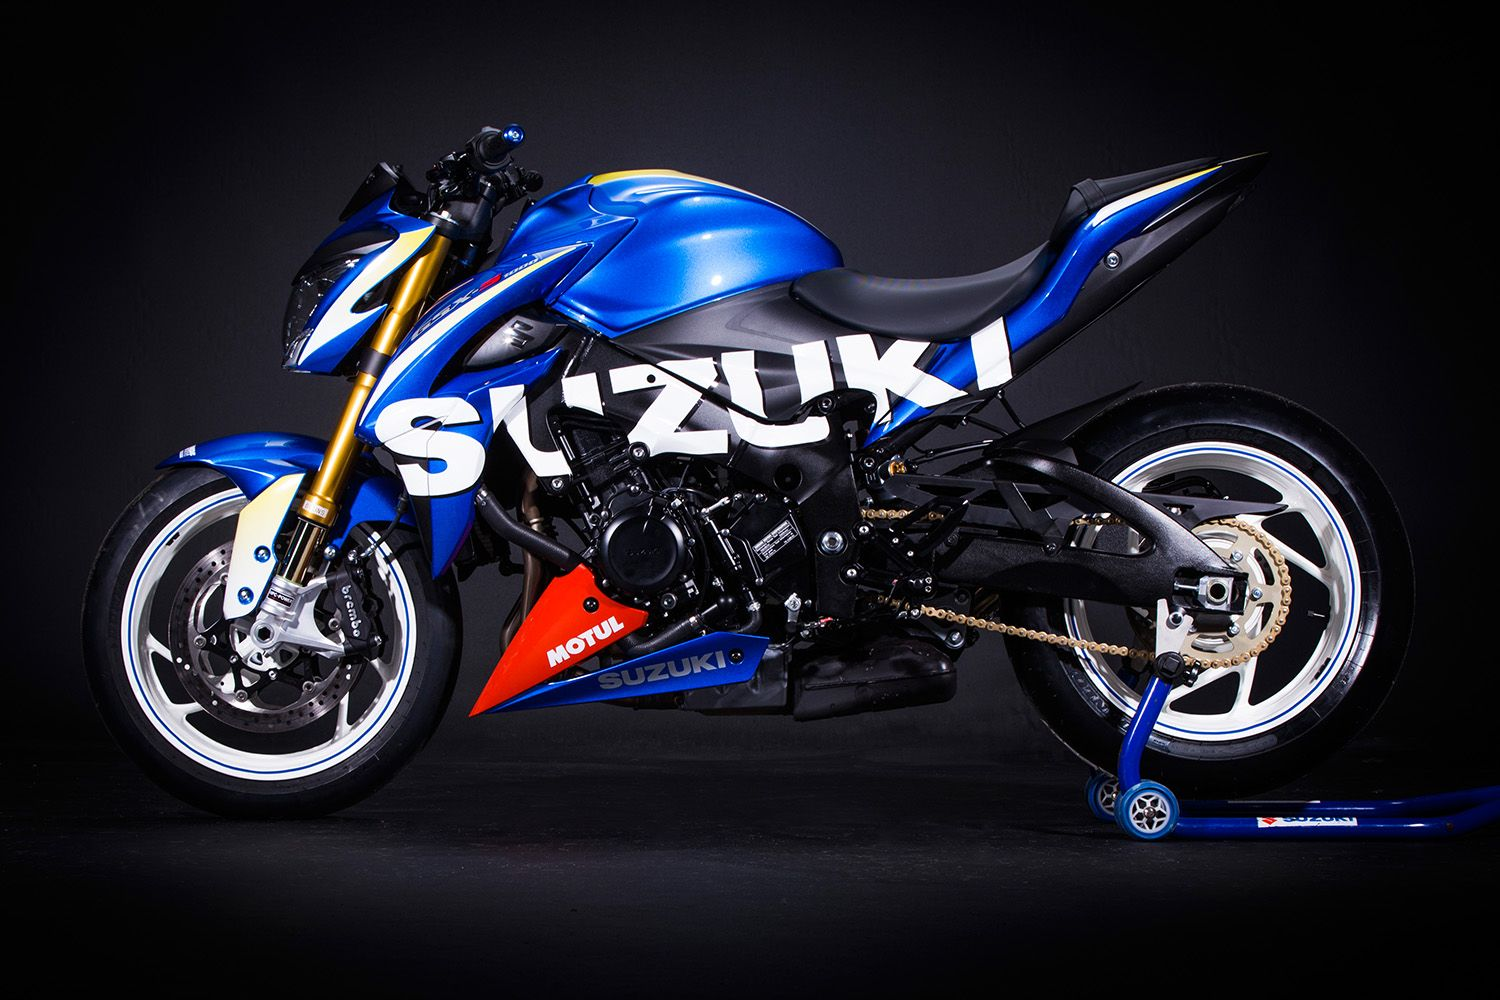 suzuki gsx s 1000 by hpc power i think this model will. Black Bedroom Furniture Sets. Home Design Ideas